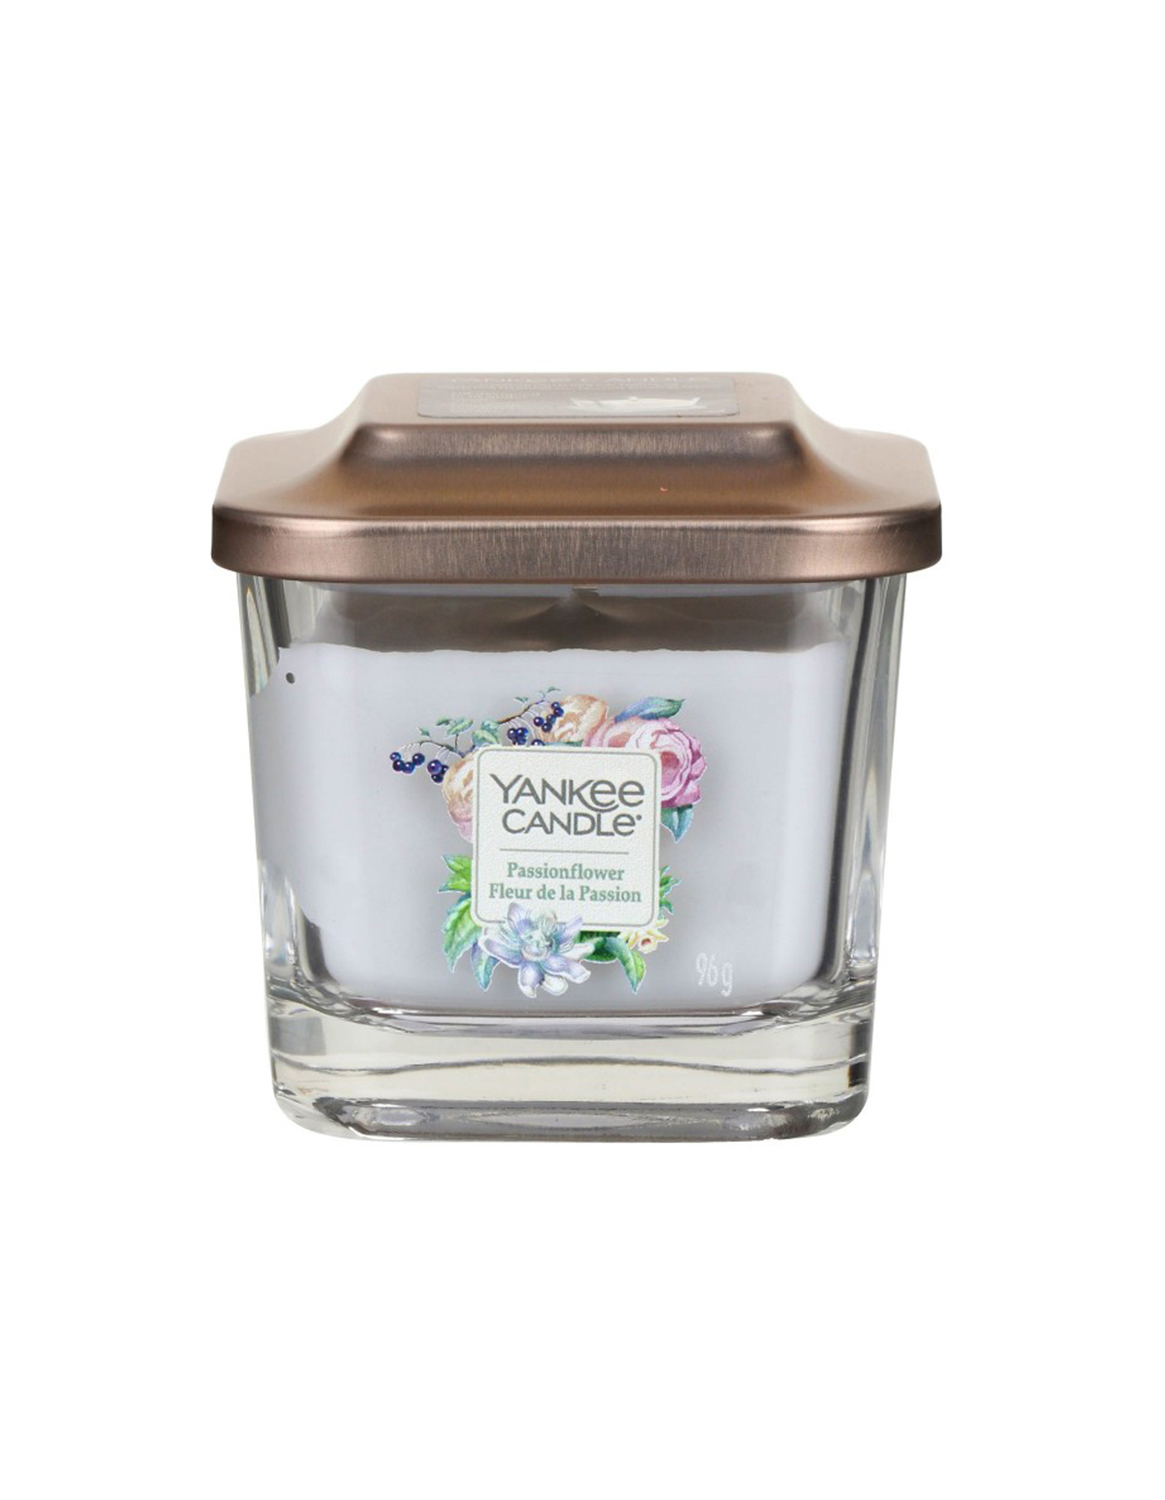 Yankee Candle fragrant candle Elevation Passionflower small square 1 wick